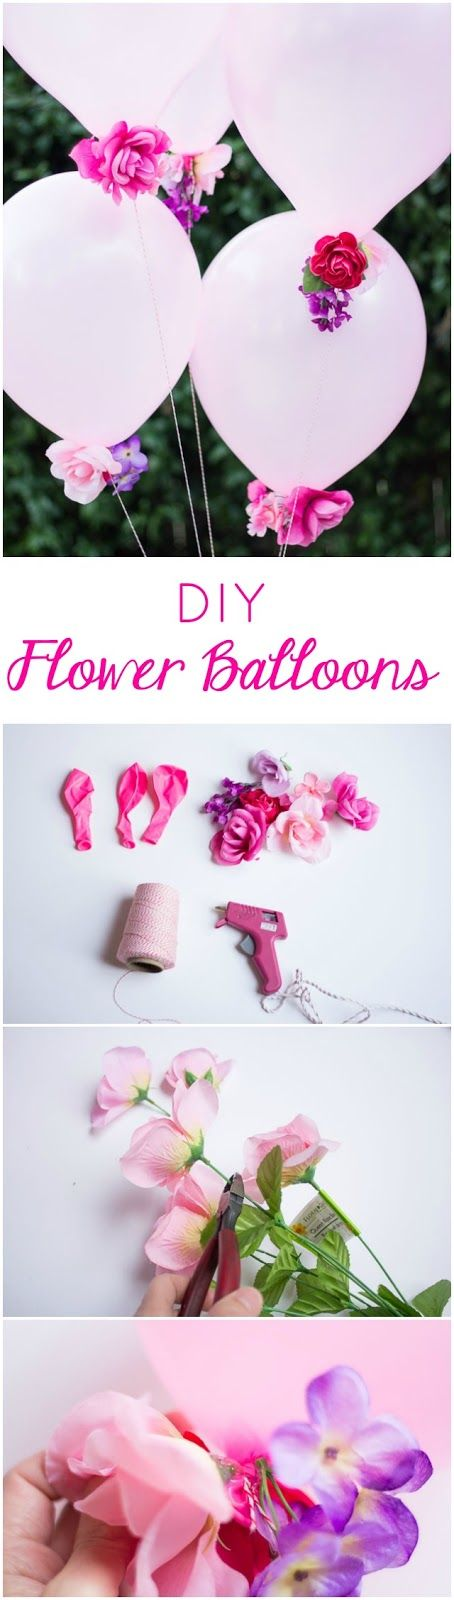 Artificial flowers with balloons.